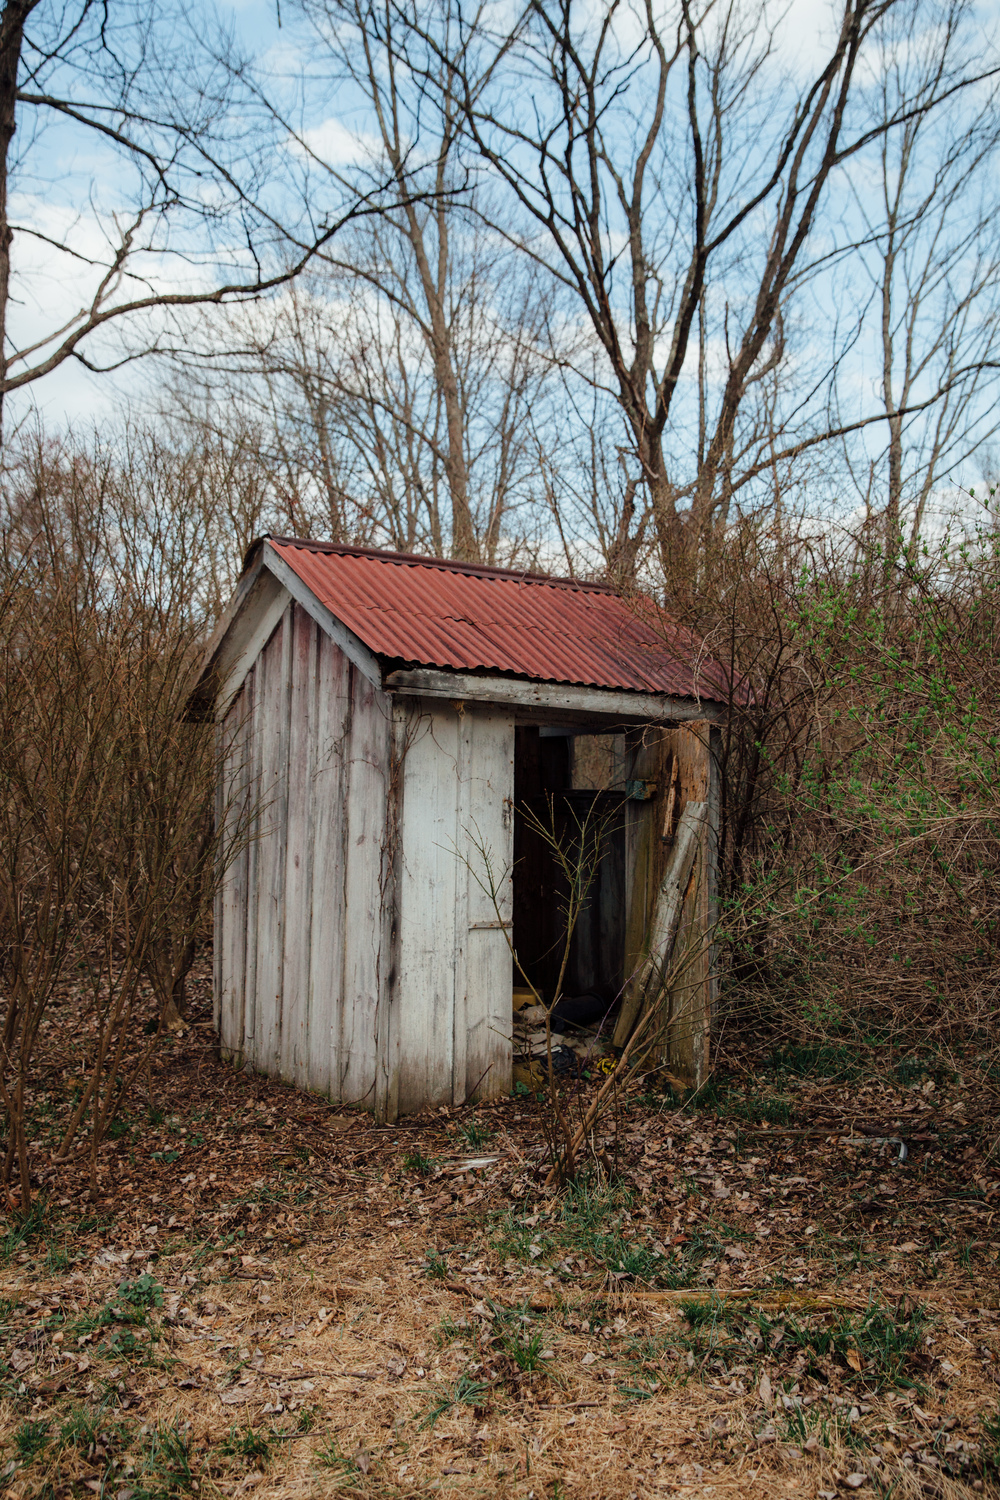 An old, abandoned outhouse structure in the Delaware Water Gap, New Jersey side.